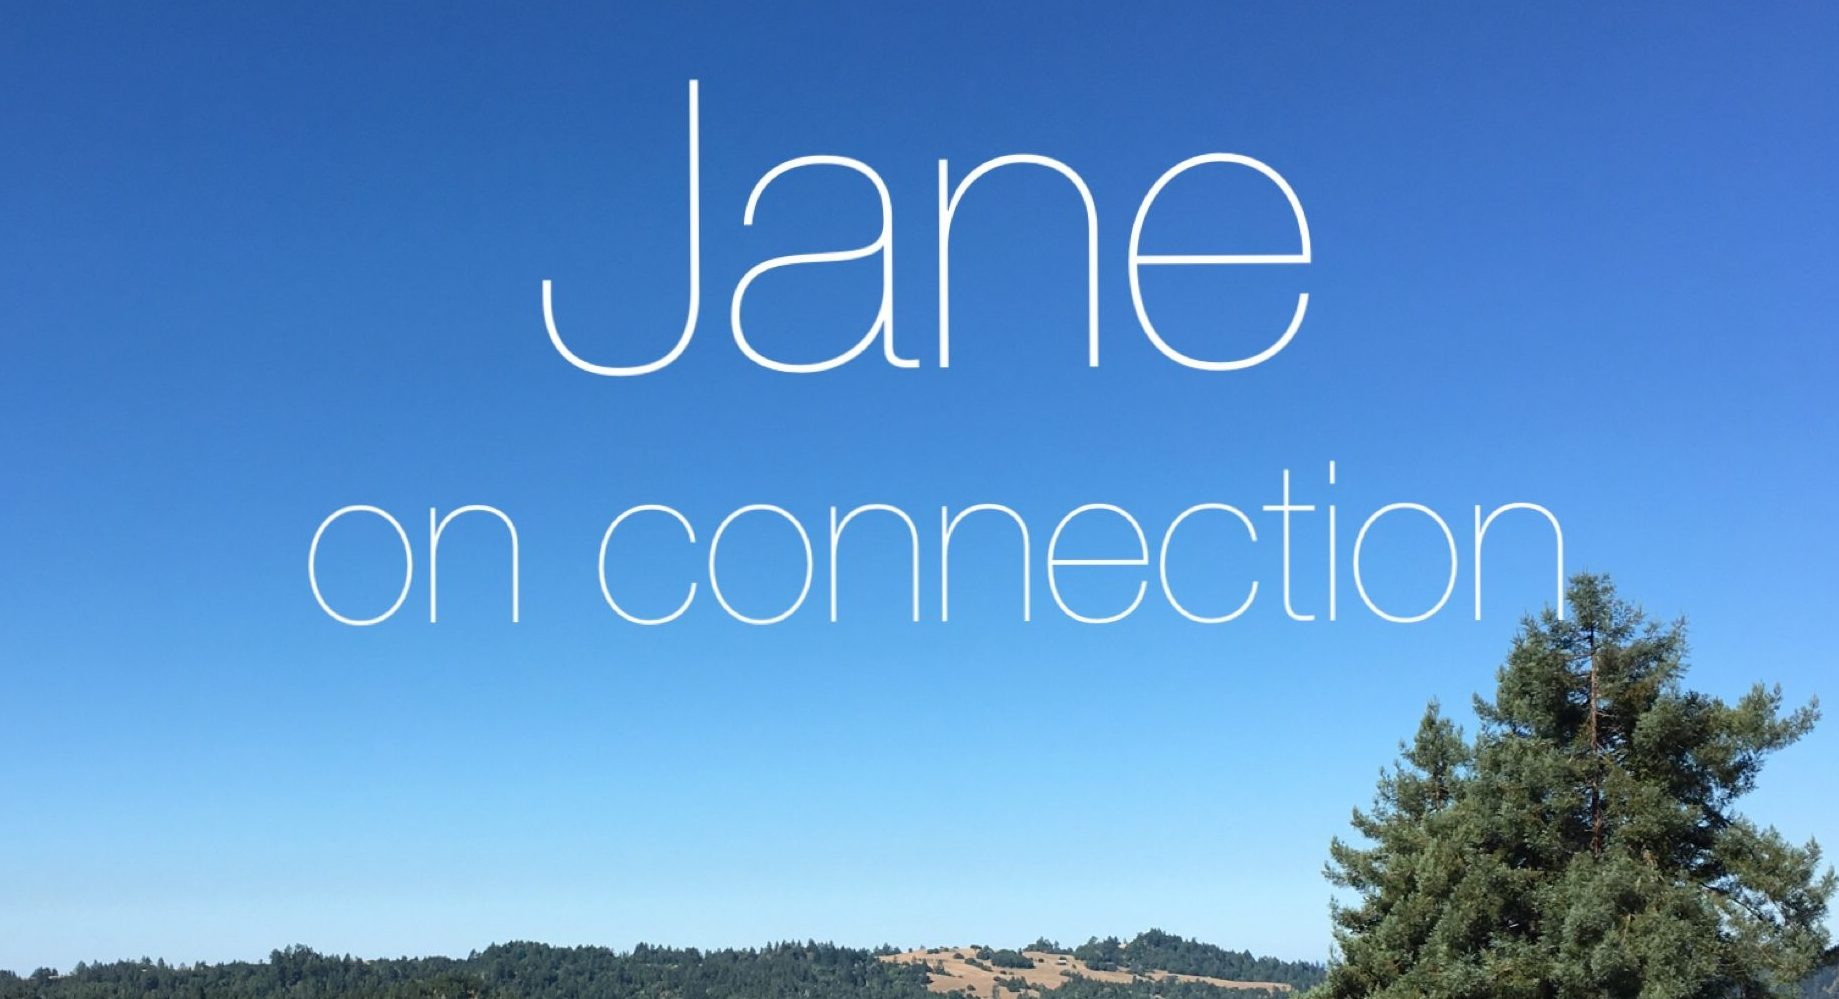 Episode 47: Jane on connection